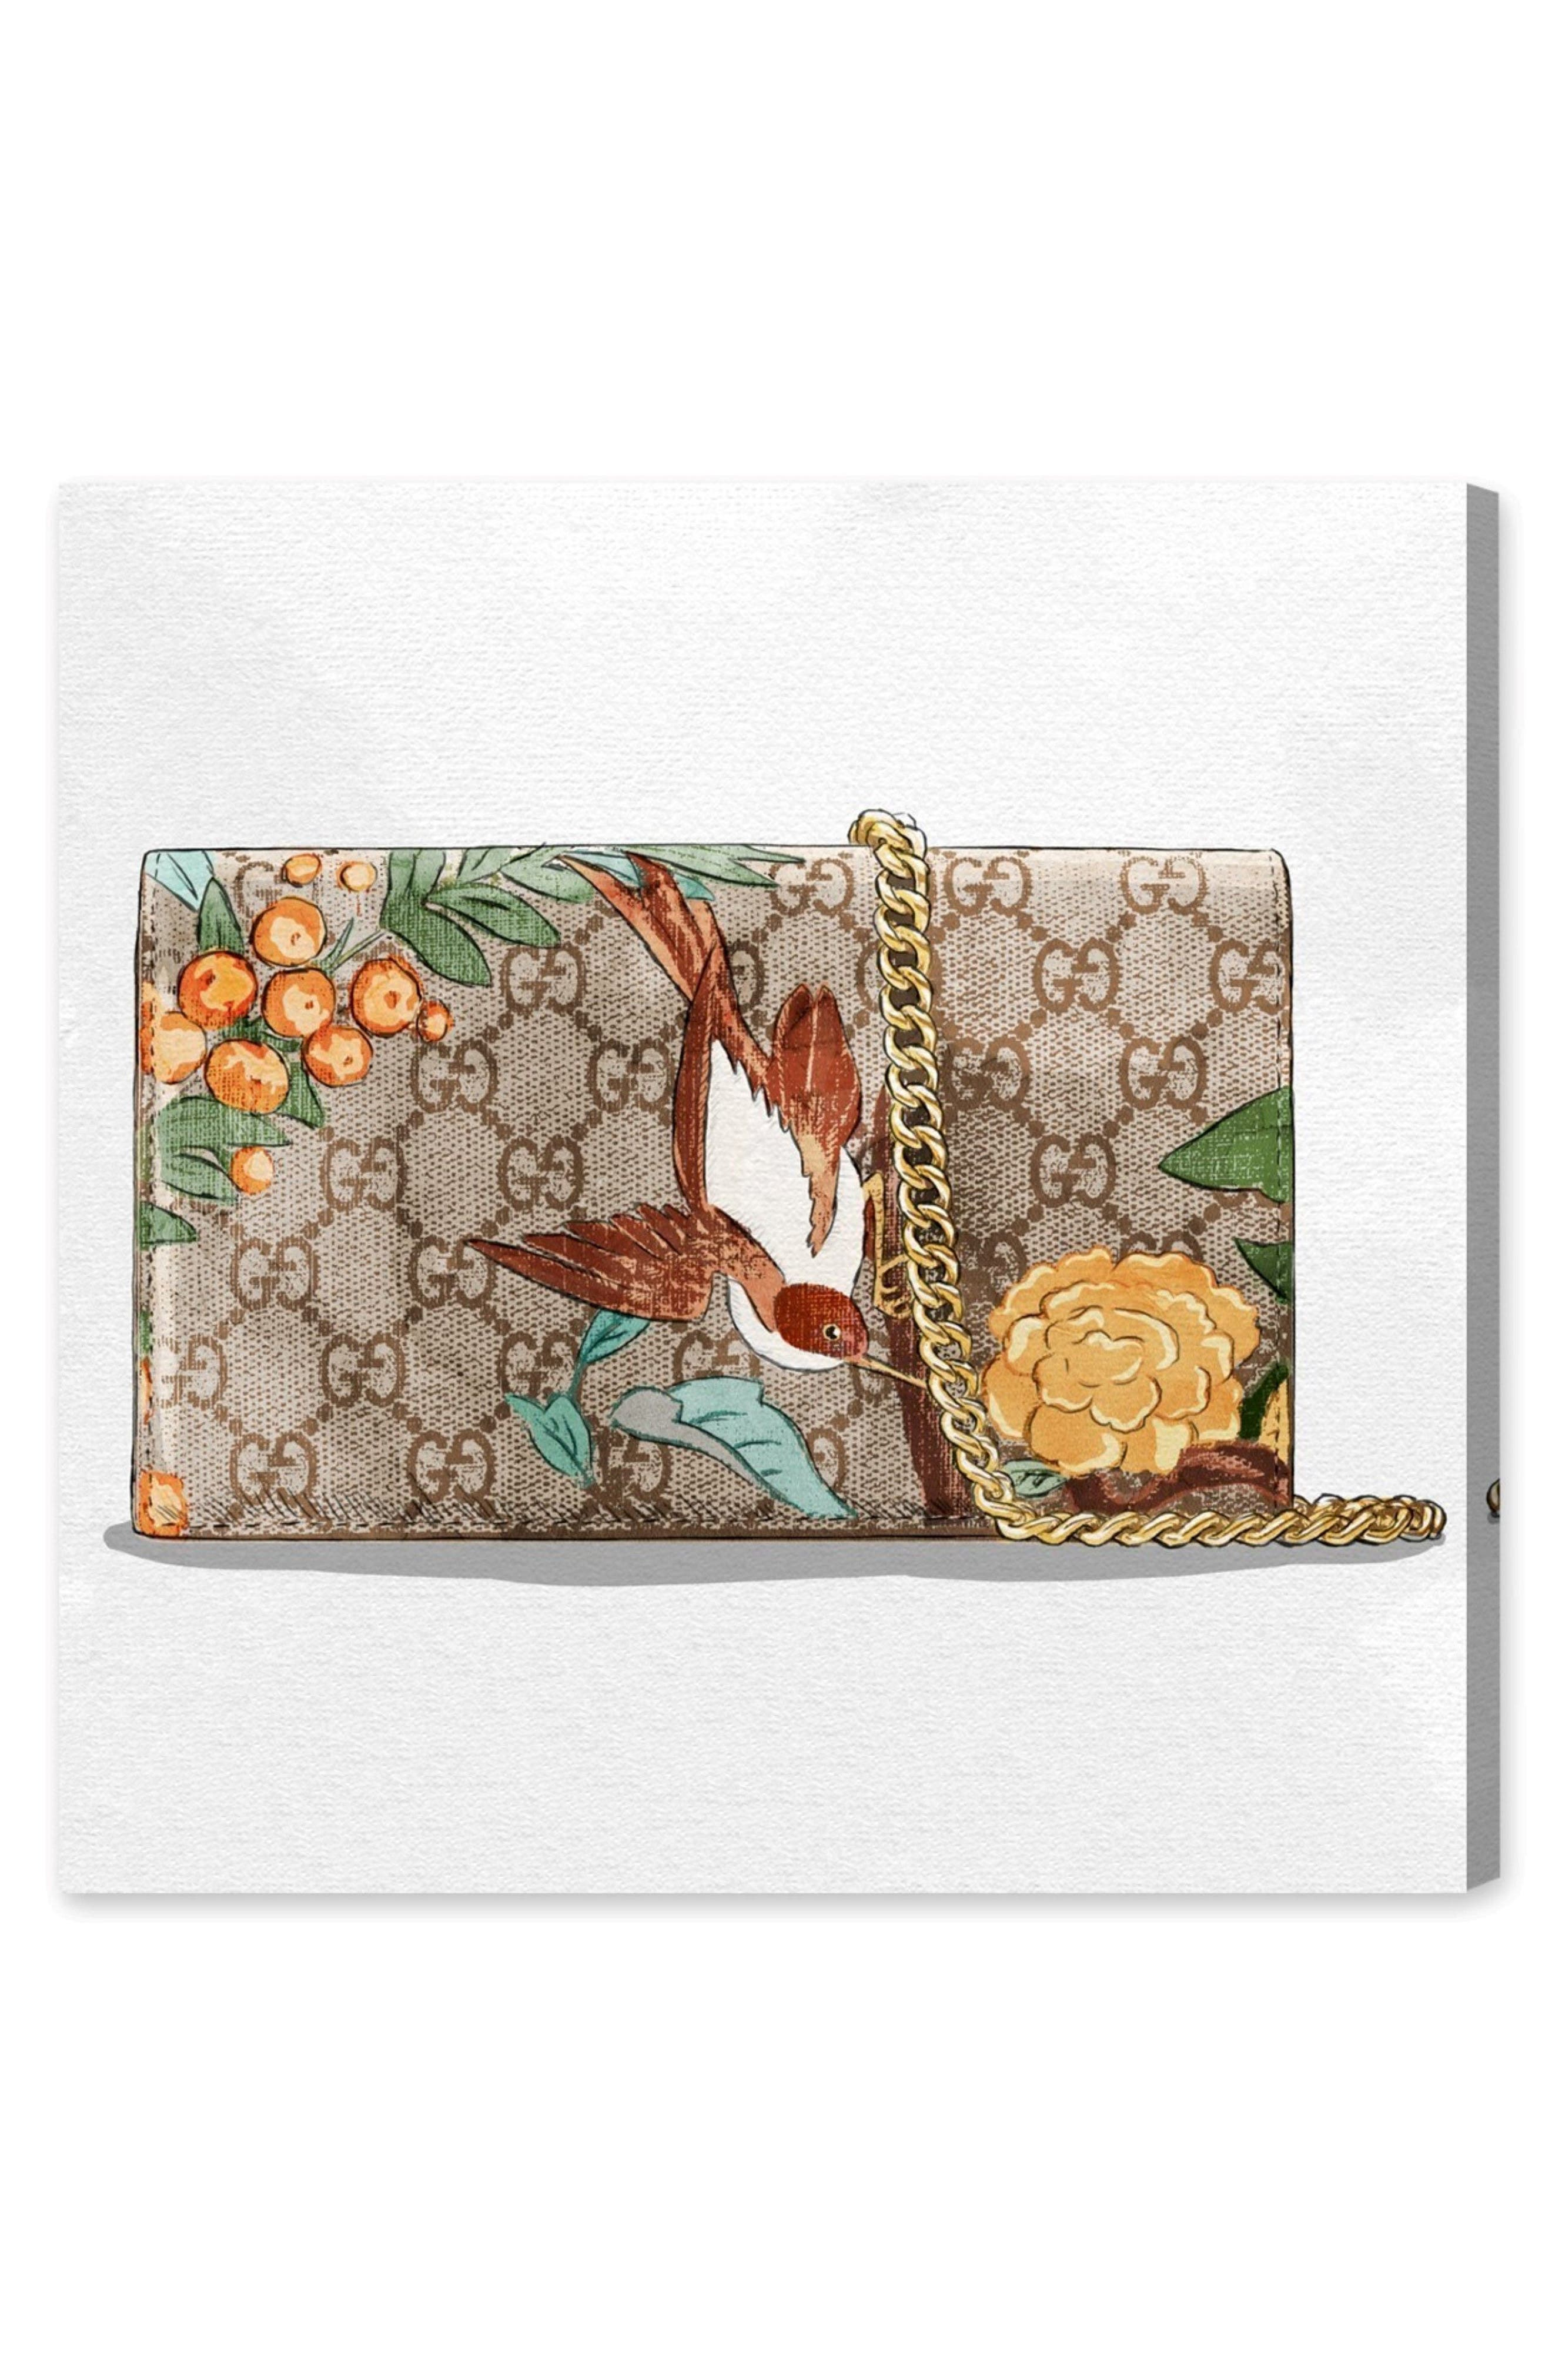 My Jungle Bag Canvas Wall Art,                         Main,                         color, White